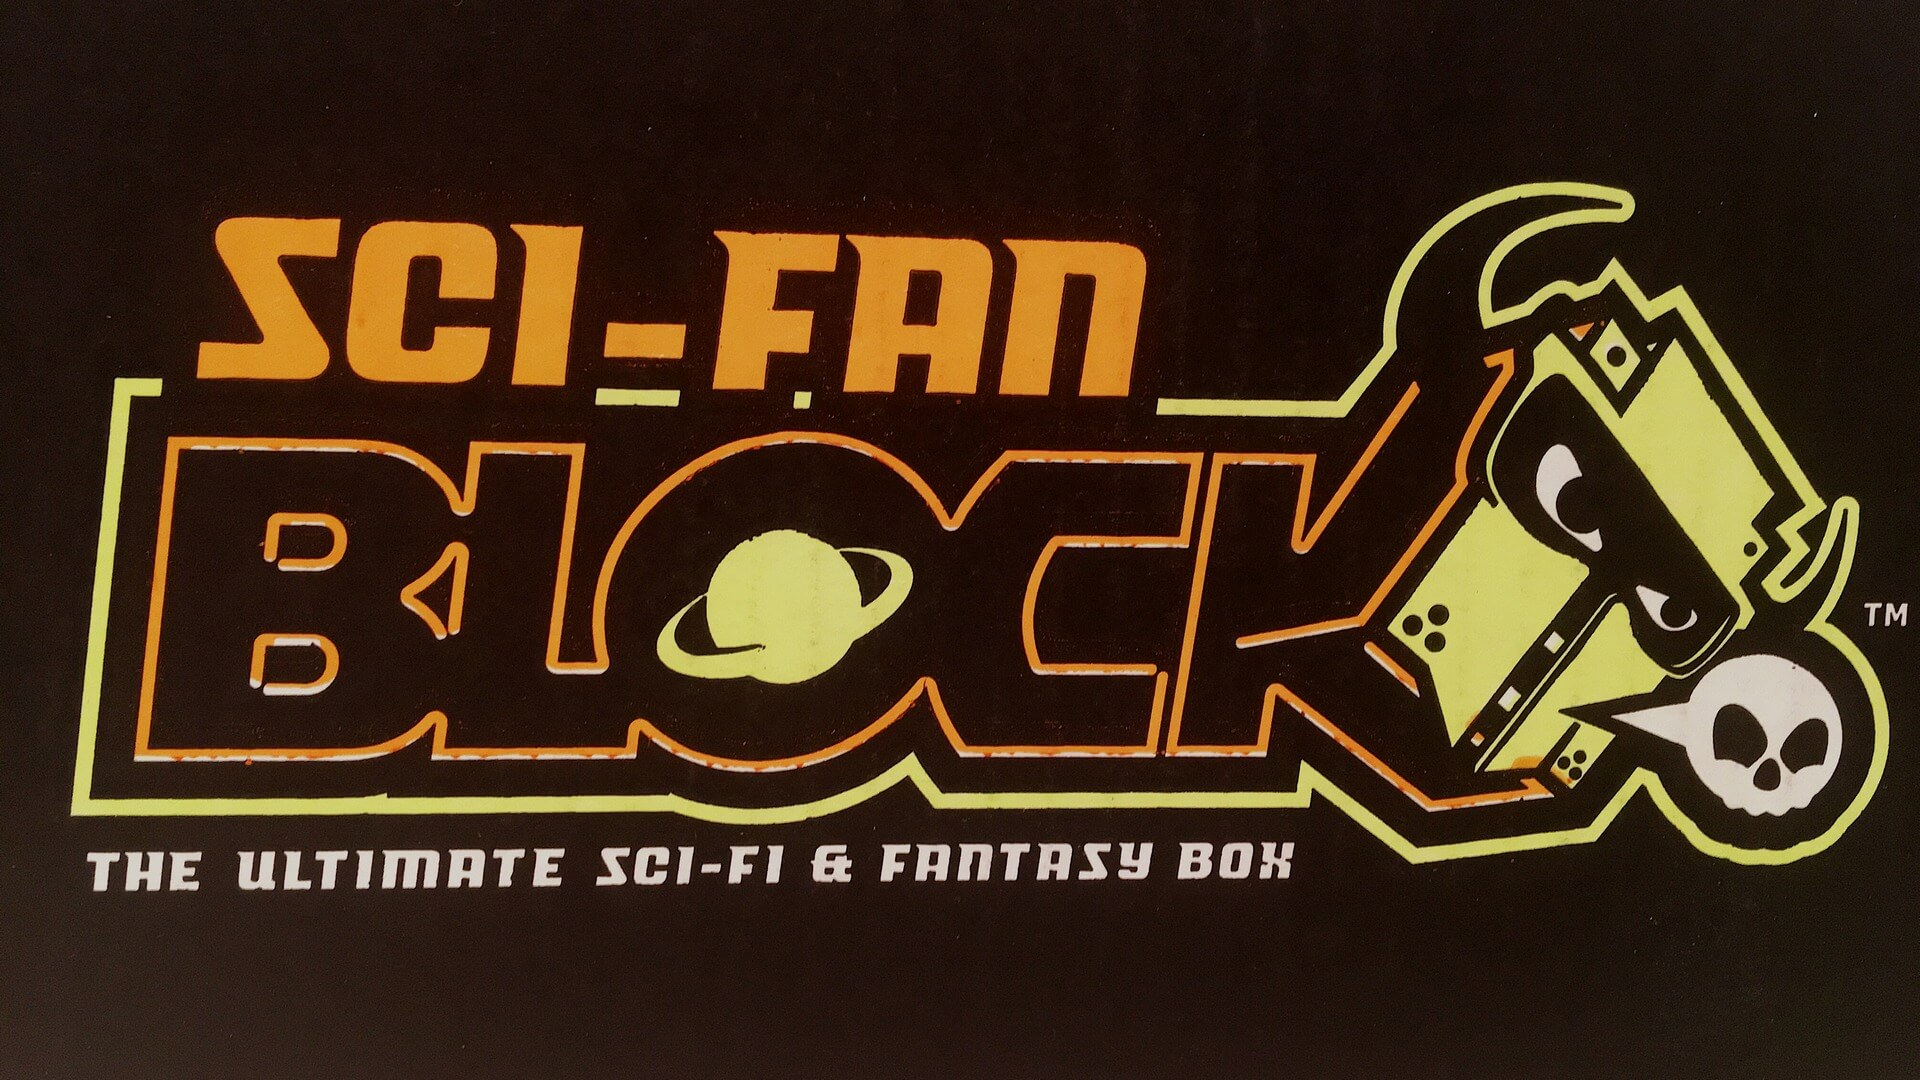 Sci-Fan Block: Where Science Fiction and Fantasy Meet - Review